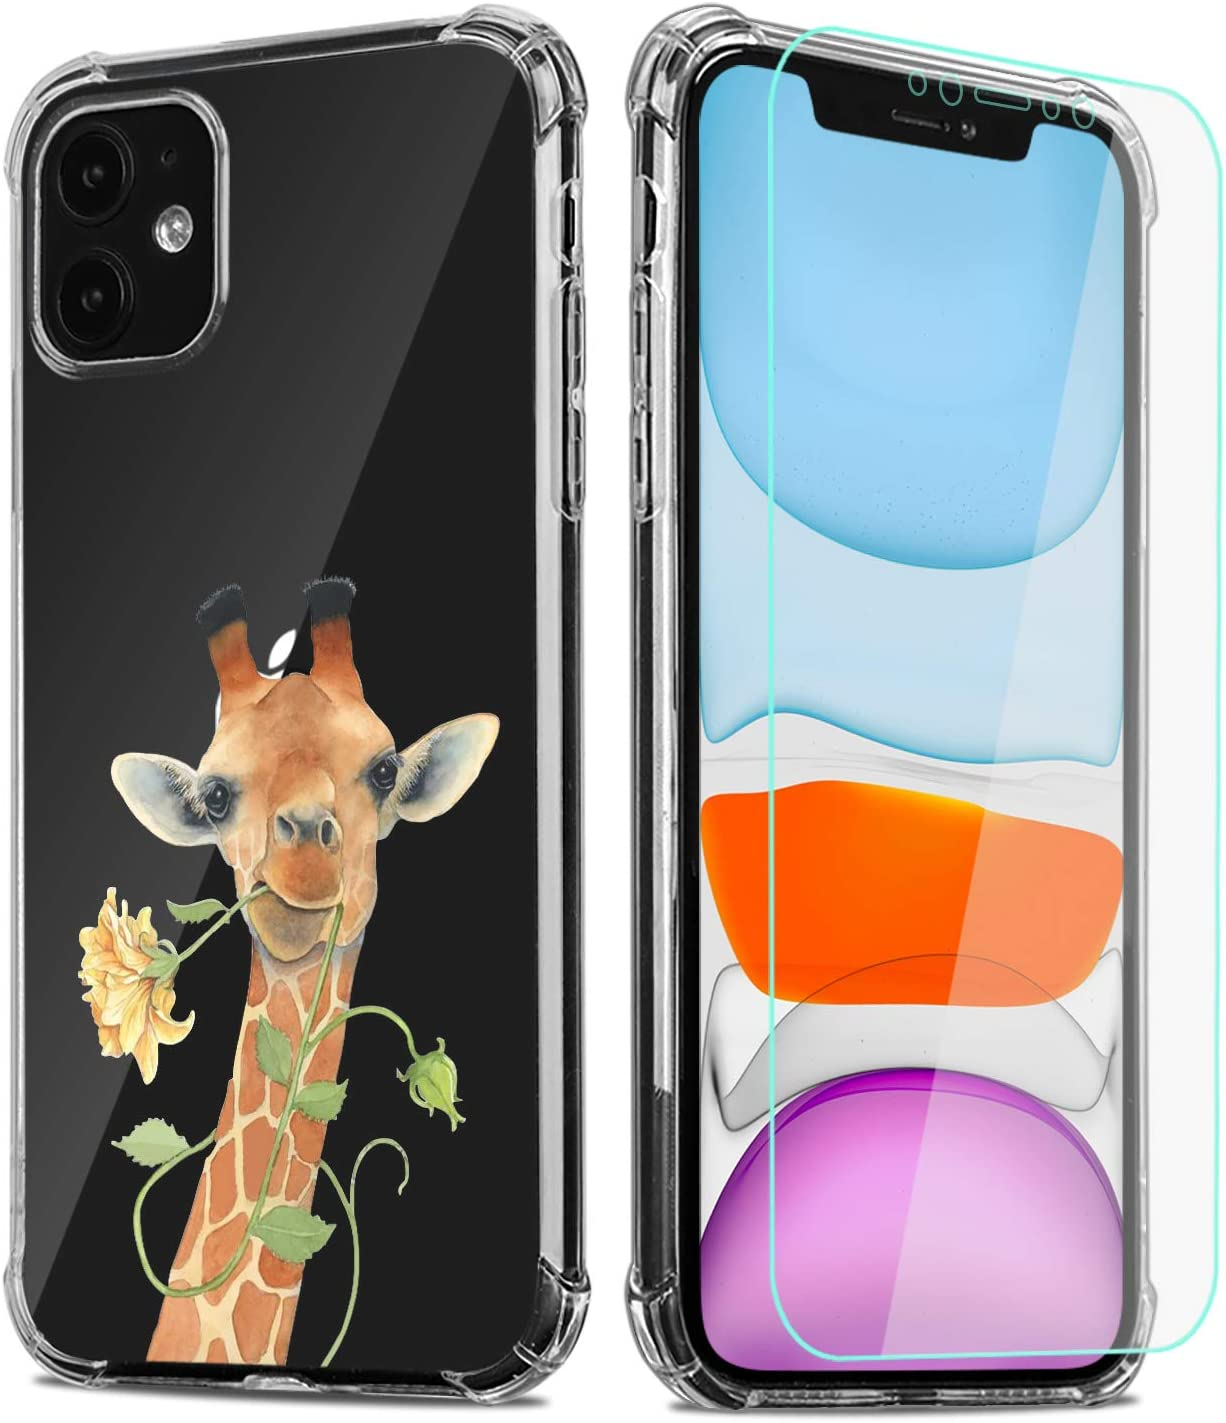 "Giraffe Phone Case for iPhone 11 with Screen Protector, Clear Giraffe Floral Pattern Soft & Flexible TPU Ultra-Thin Shockproof Transparent Bumper Protective Case for iPhone 11 6.1"" 2019(Giraffe)"